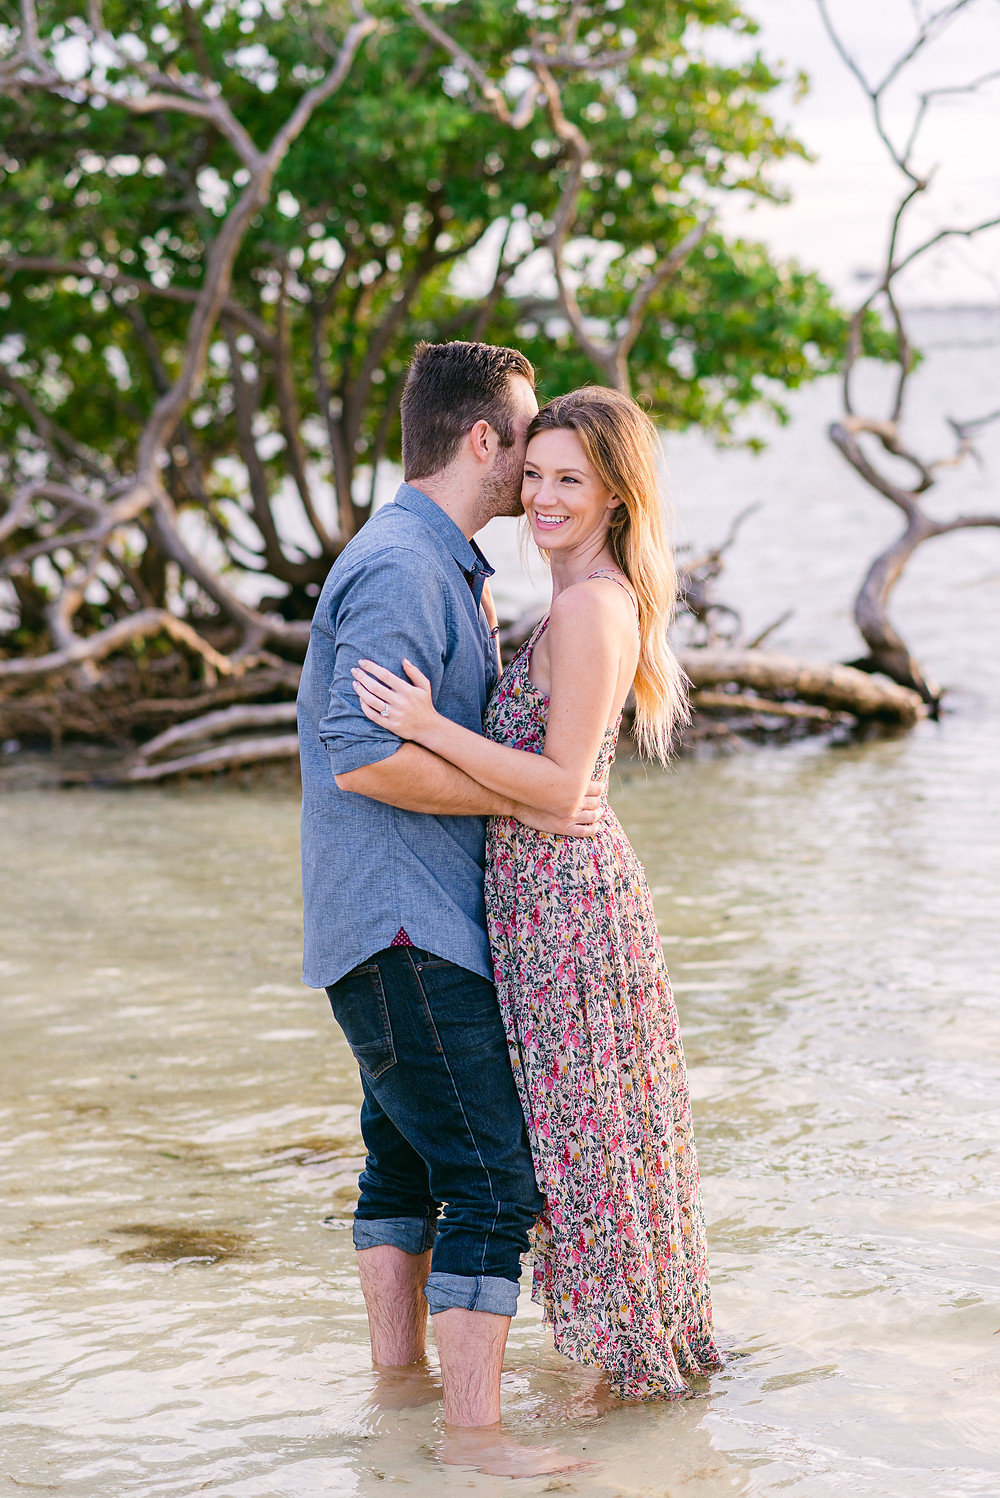 Tampa beach engagement session by Nina Bashaw Photography